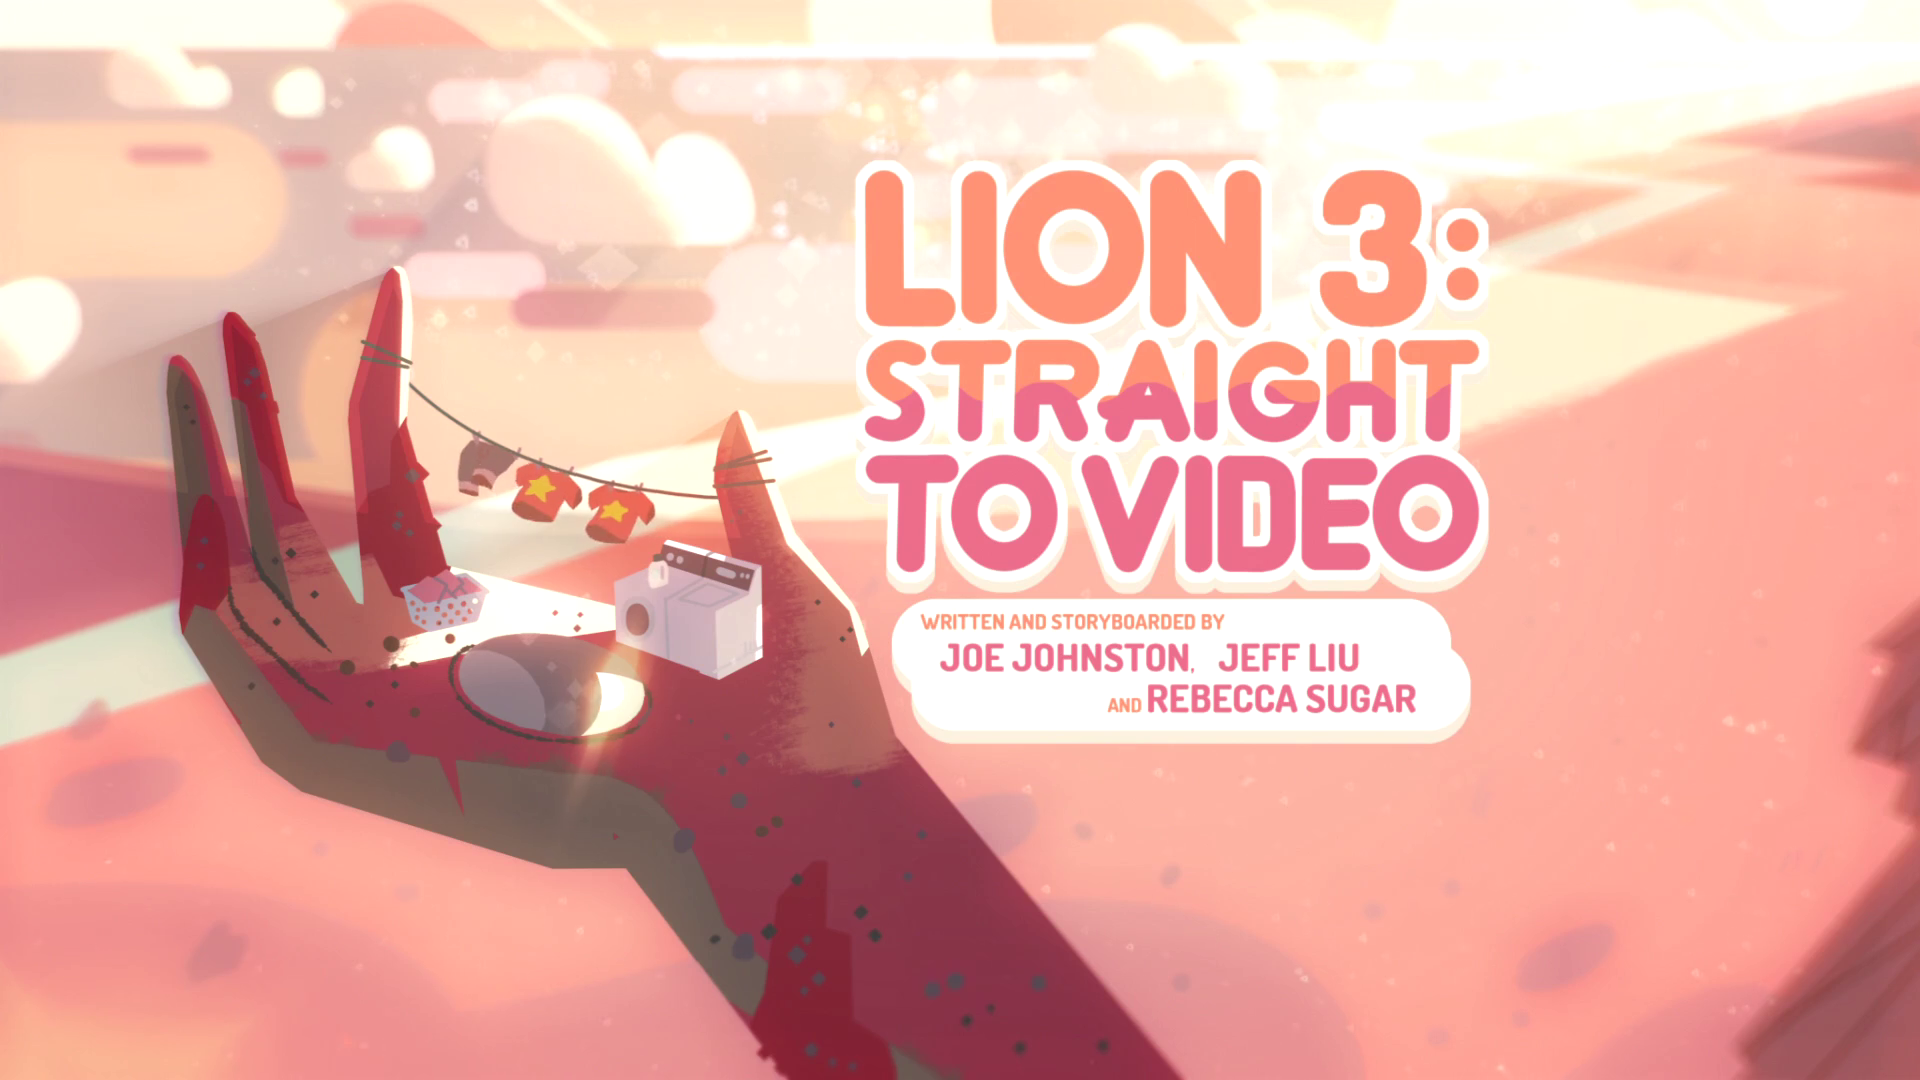 Lion 3: Straight to Video